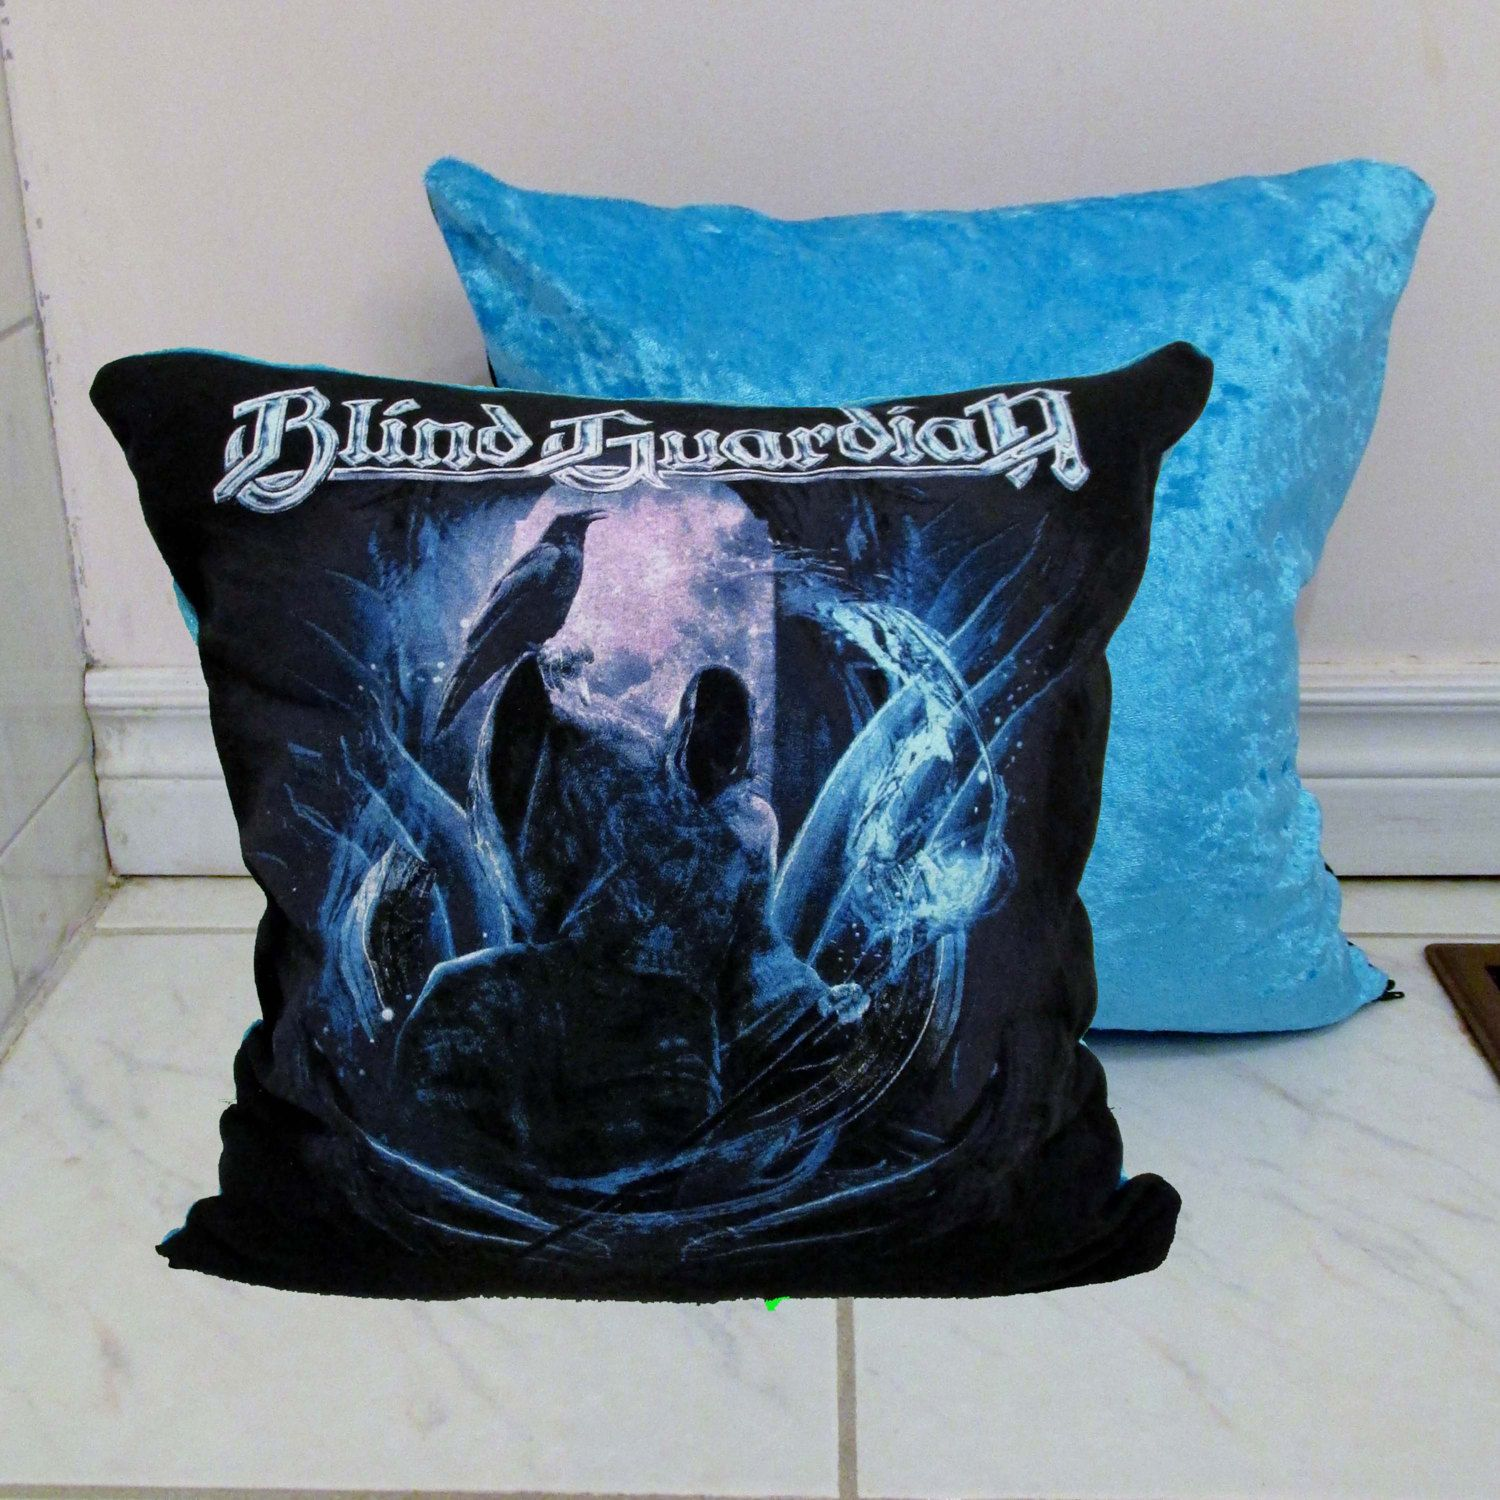 Blind Guardian Pillow Diy Metal Decor 1 Cover Only Insert Available